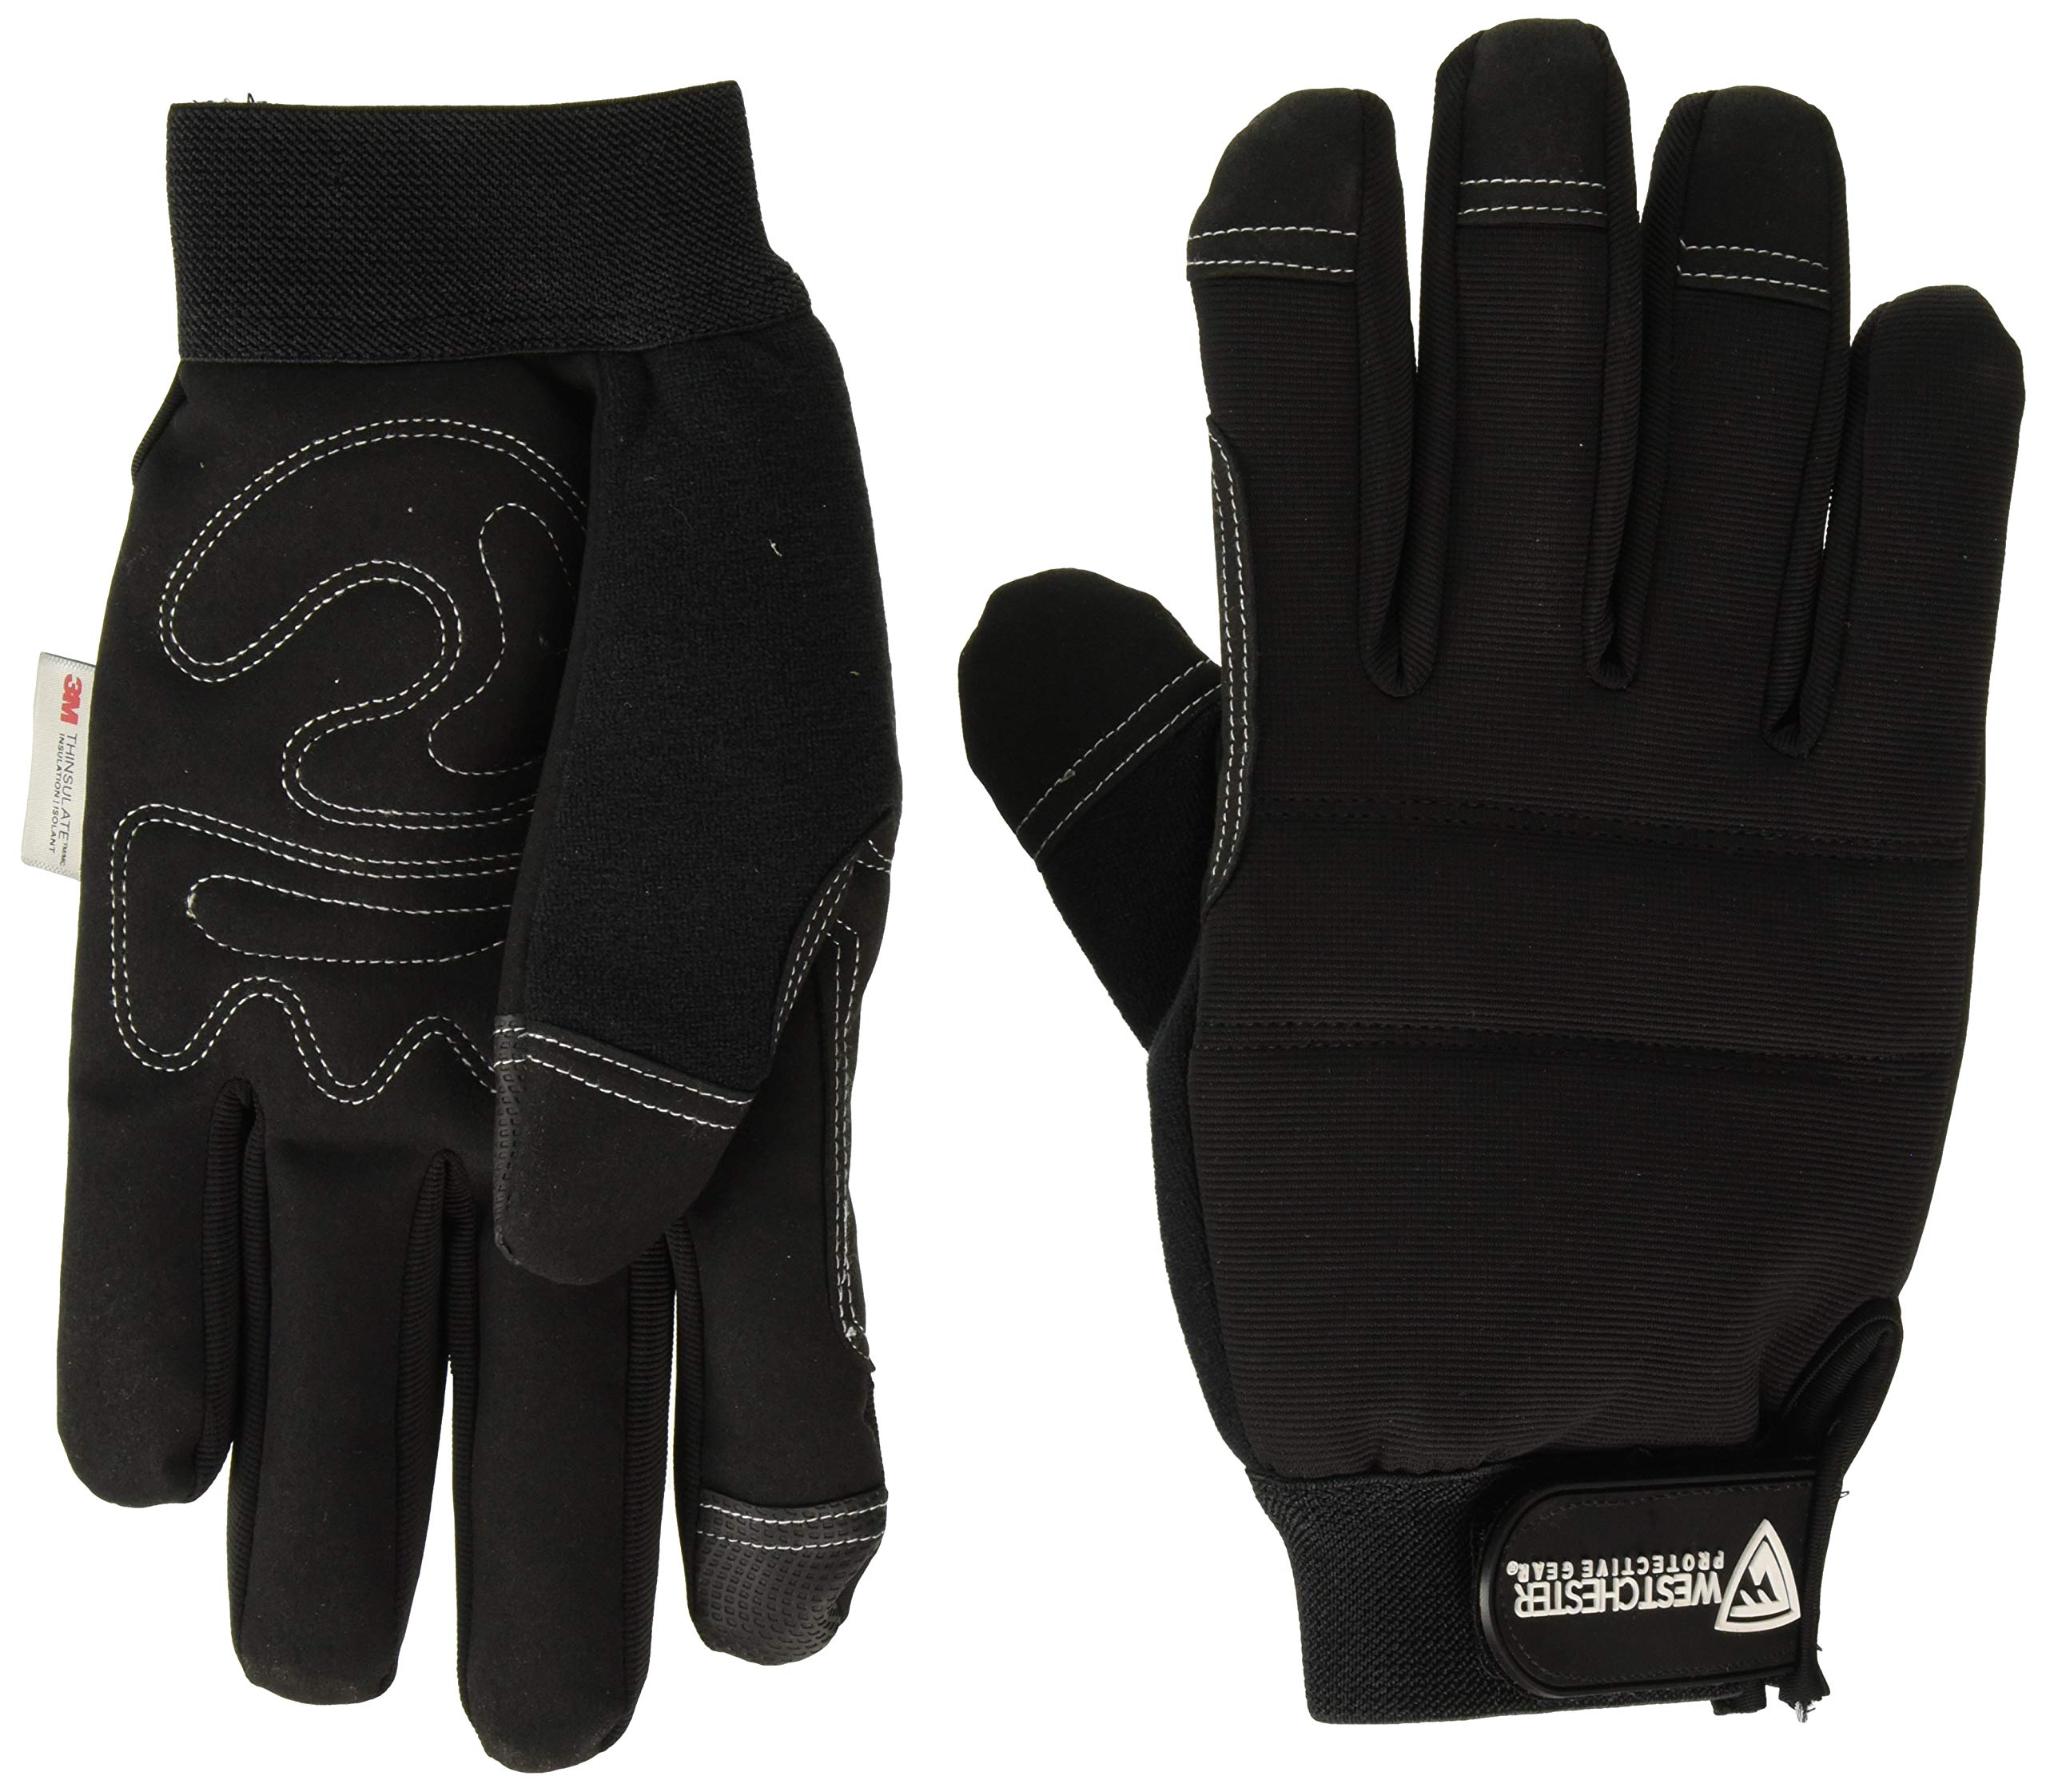 WEST CHESTER 96580/L Hi-Dex Thin Long Glove, Large by West Chester